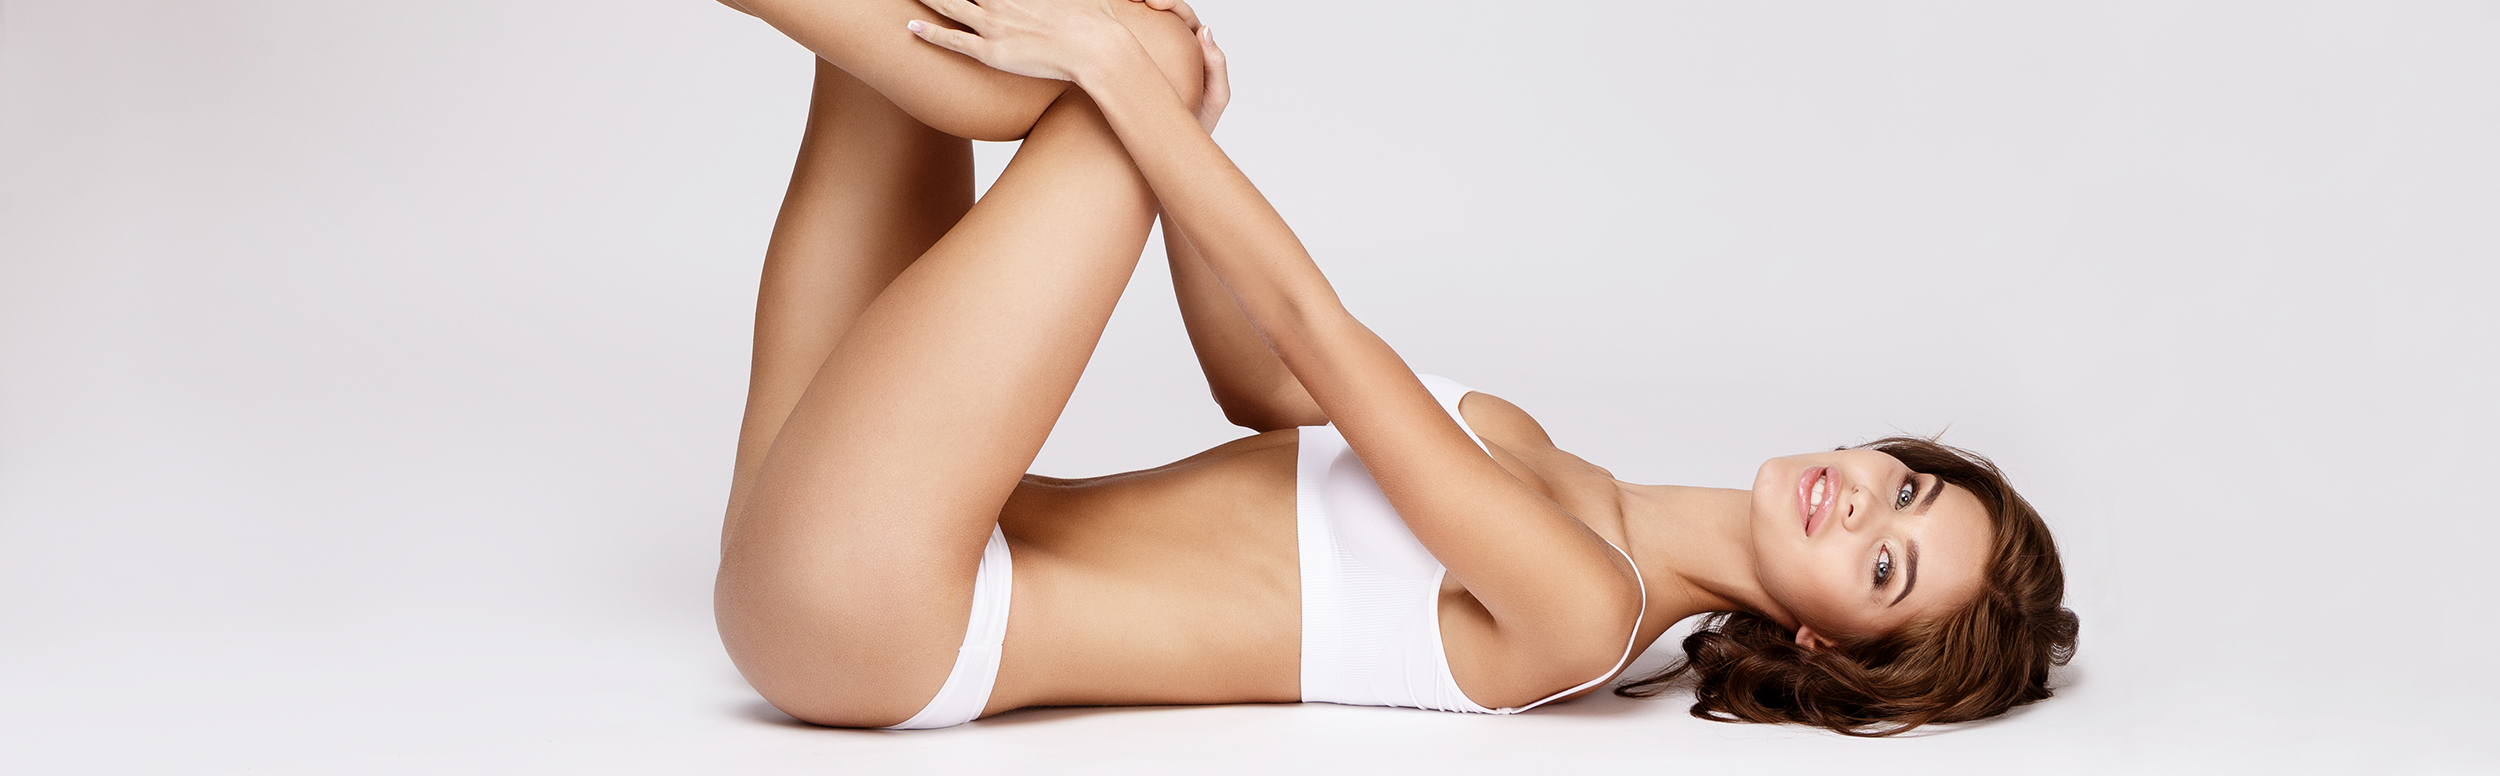 CoolSculpting London | CoolSculpting offer | Beyond MediSpa